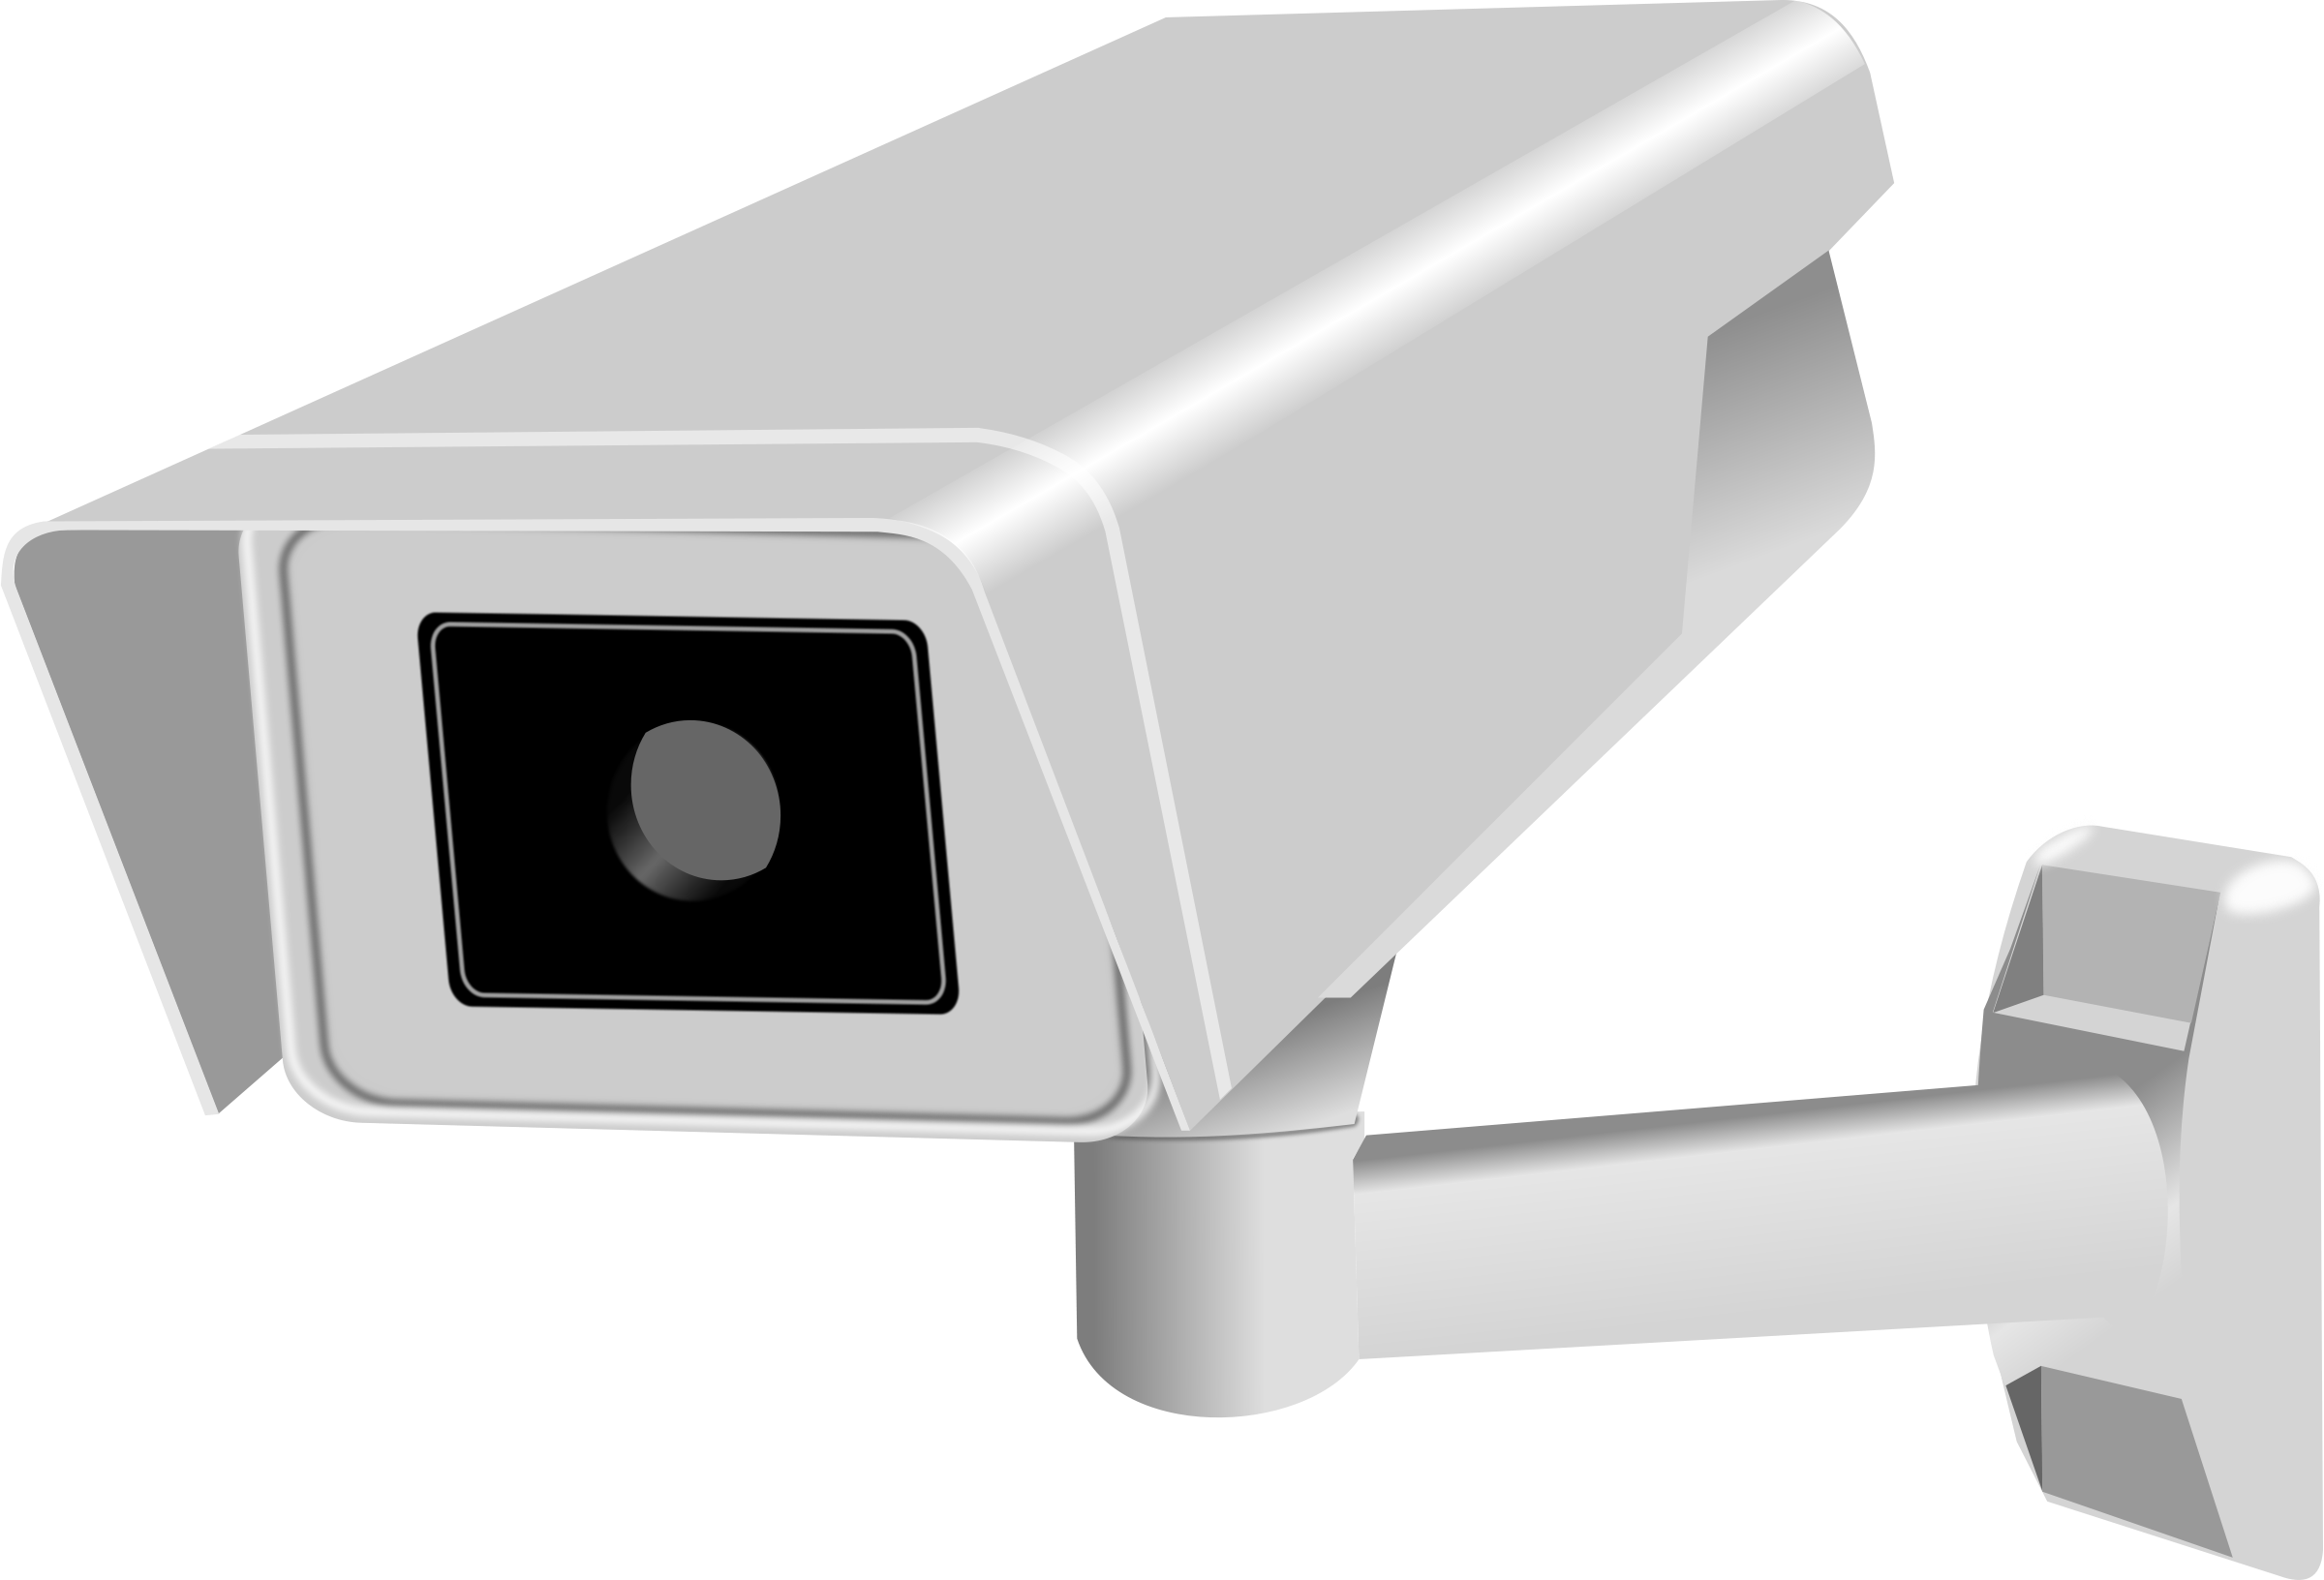 Cctv clipart security system #1